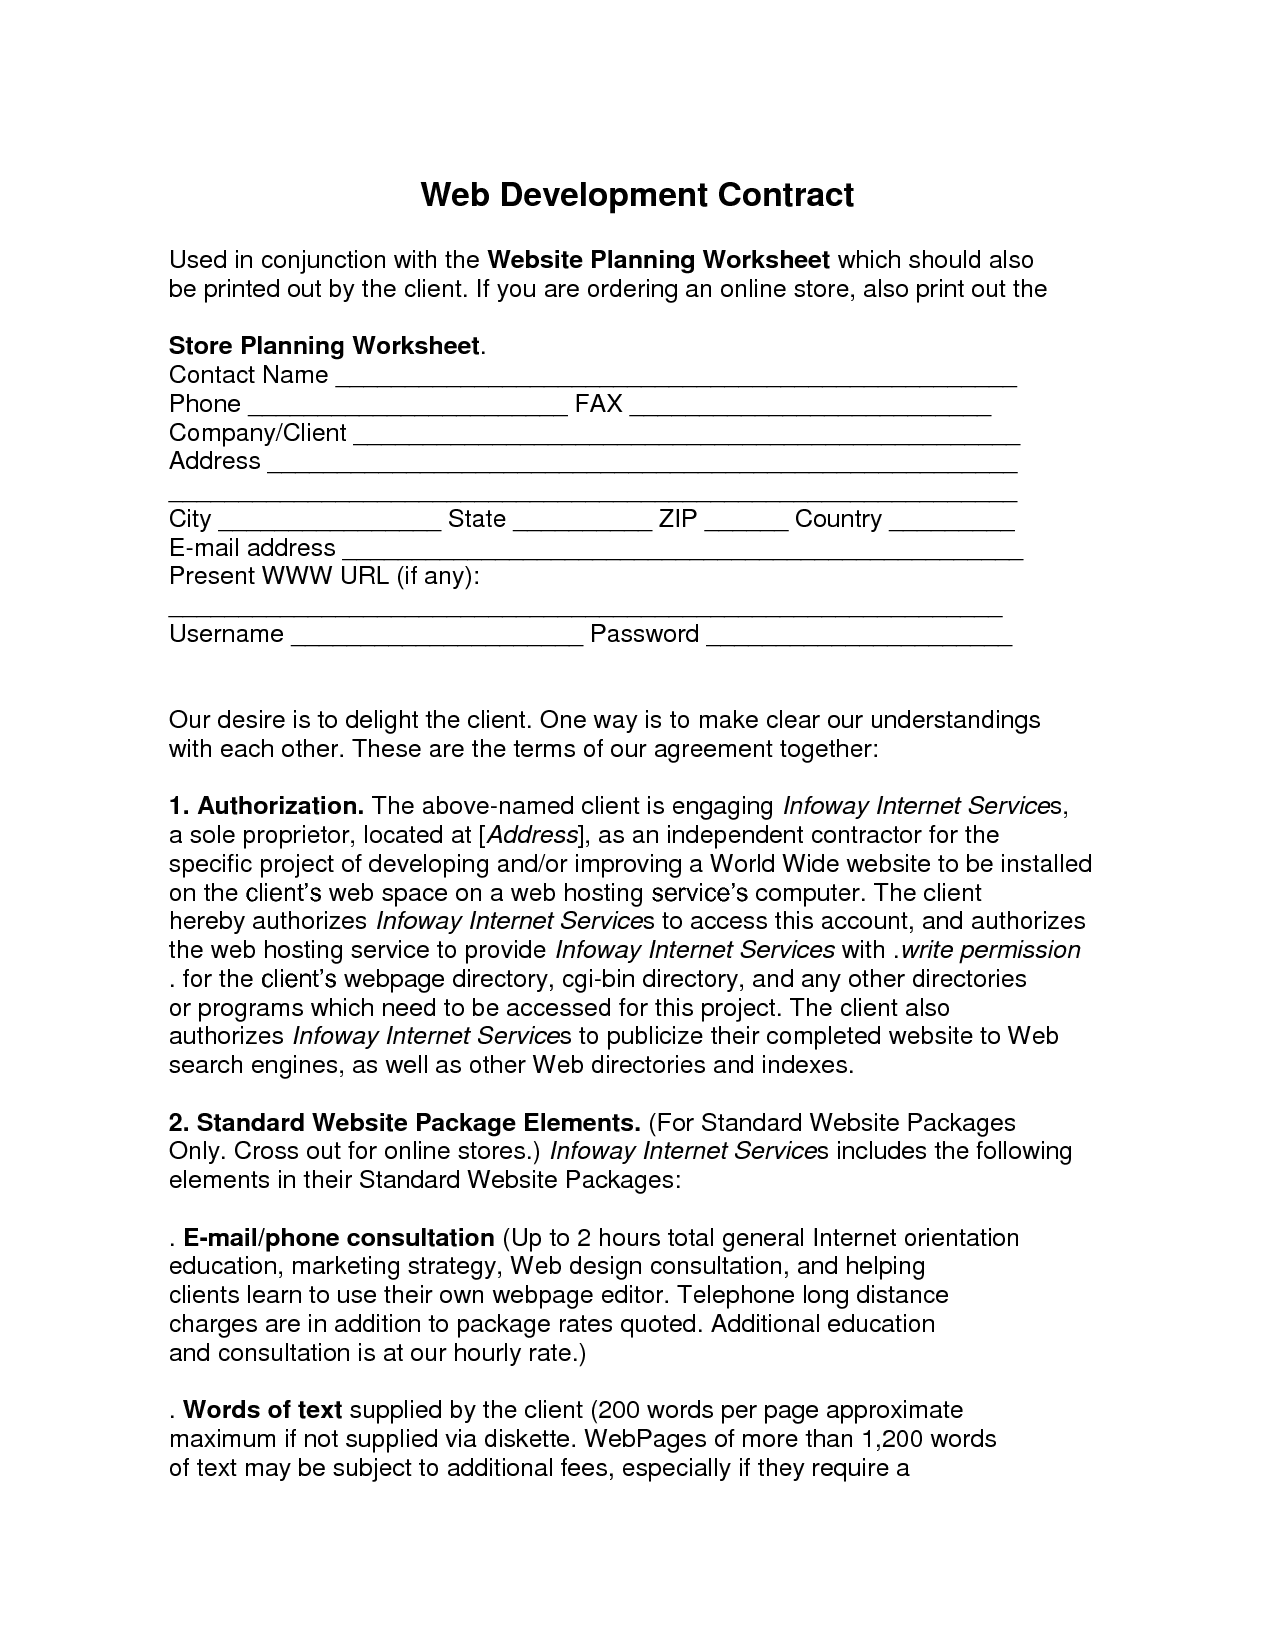 Web Development Contract Web Development Contract Used In By